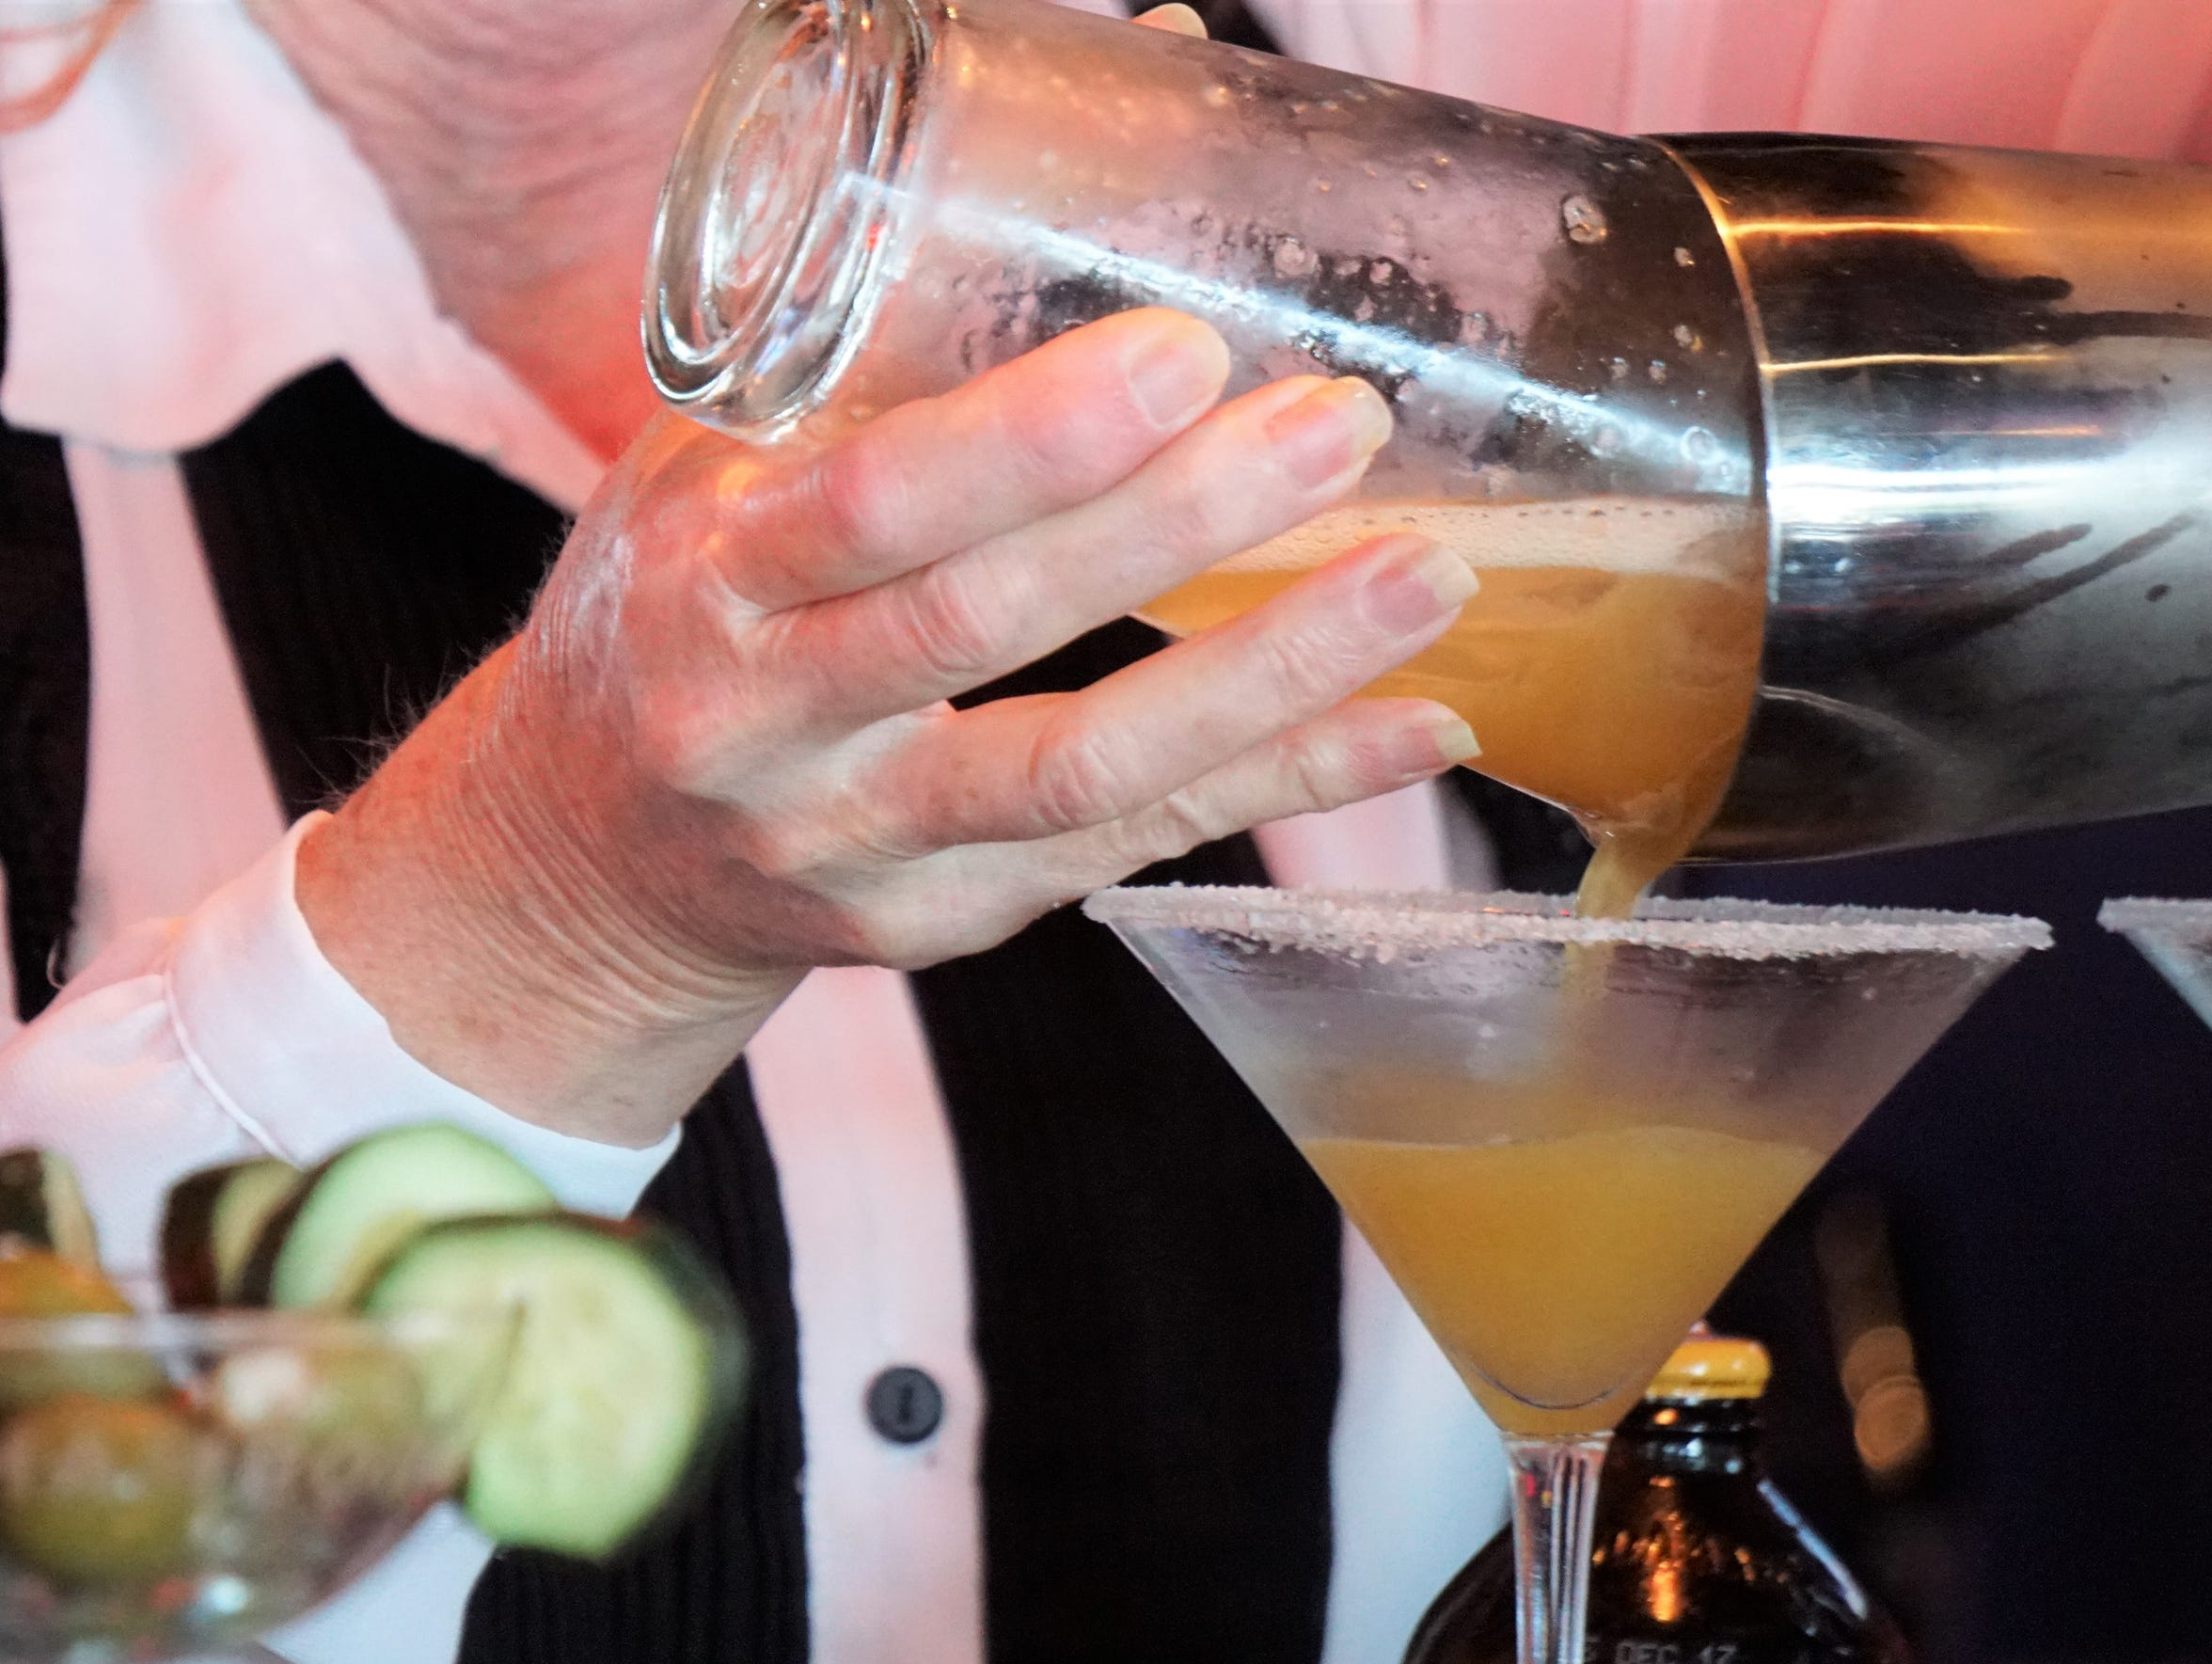 A bartender pours a drink at Latitude 28°02' Restaurant